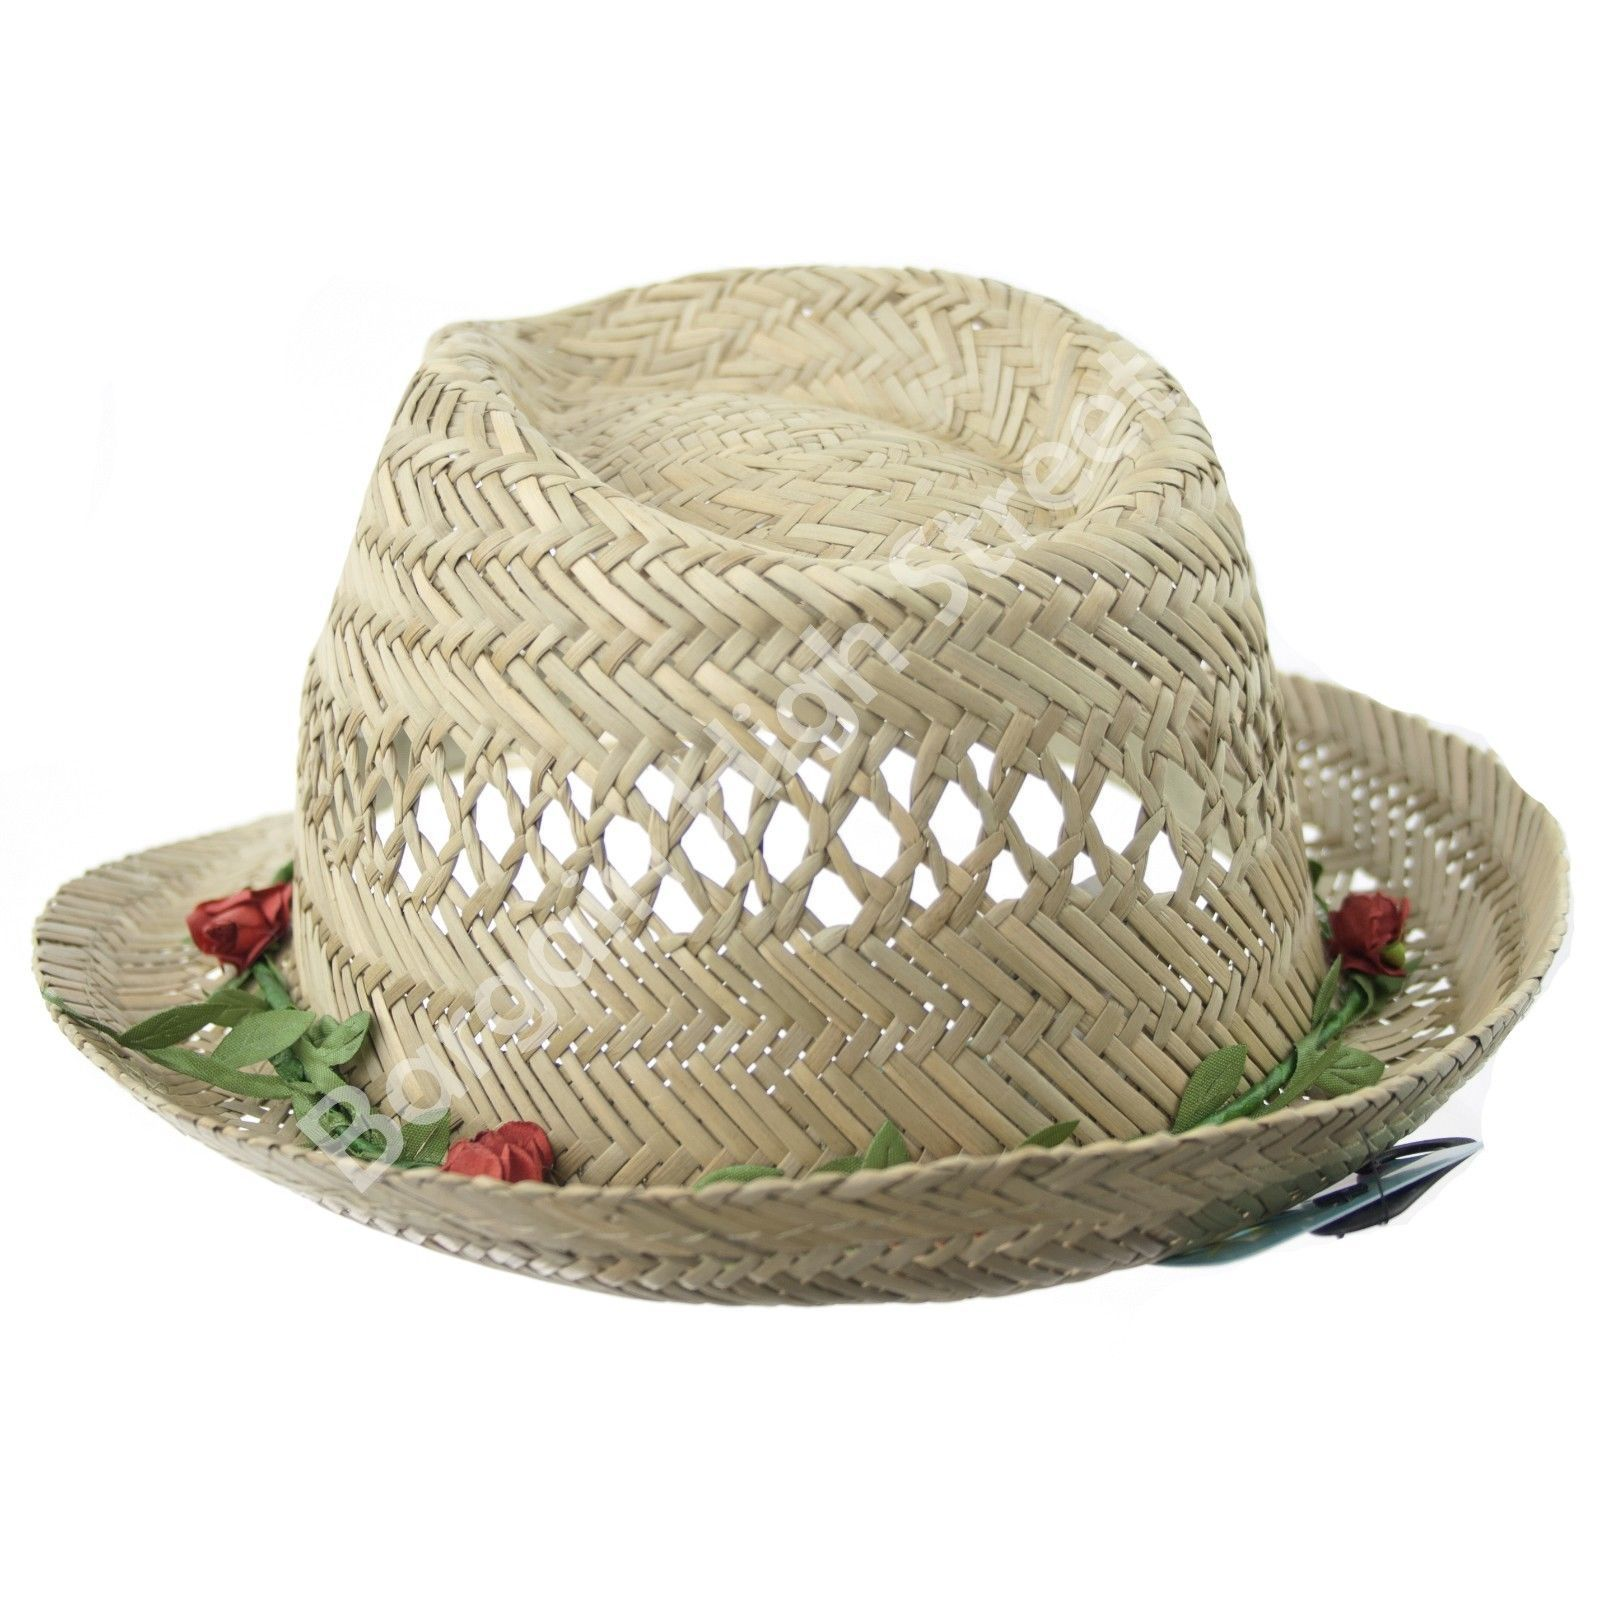 Kids' Trilby Hats at Village Hats. Find a great selection of kids' trilby hats from some of the top hat brands from around the world. We offer a variety of children's trilby hats that are .